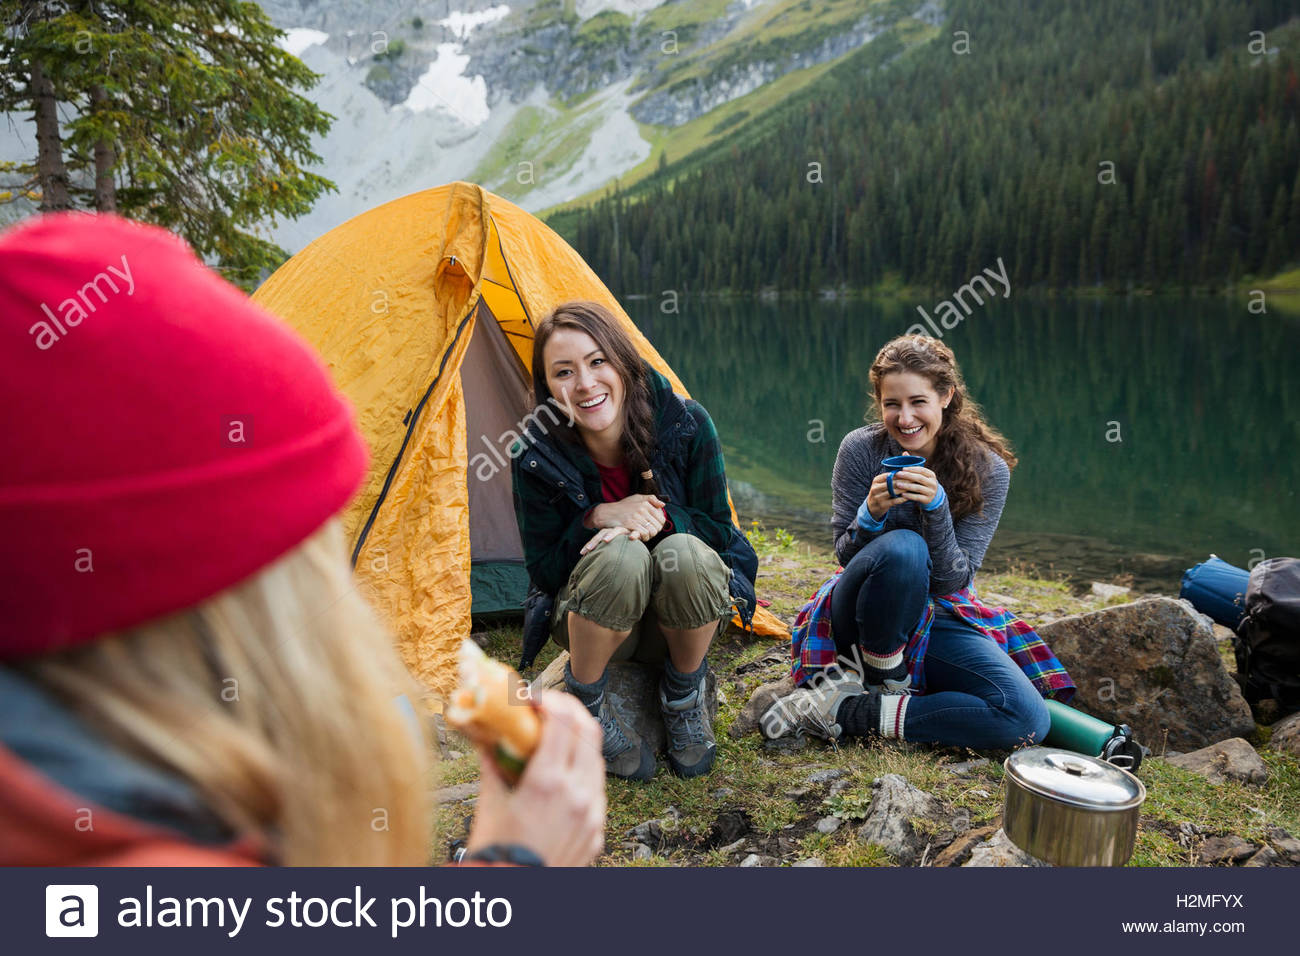 Female friends camping at remote lakeside campsite - Stock Image